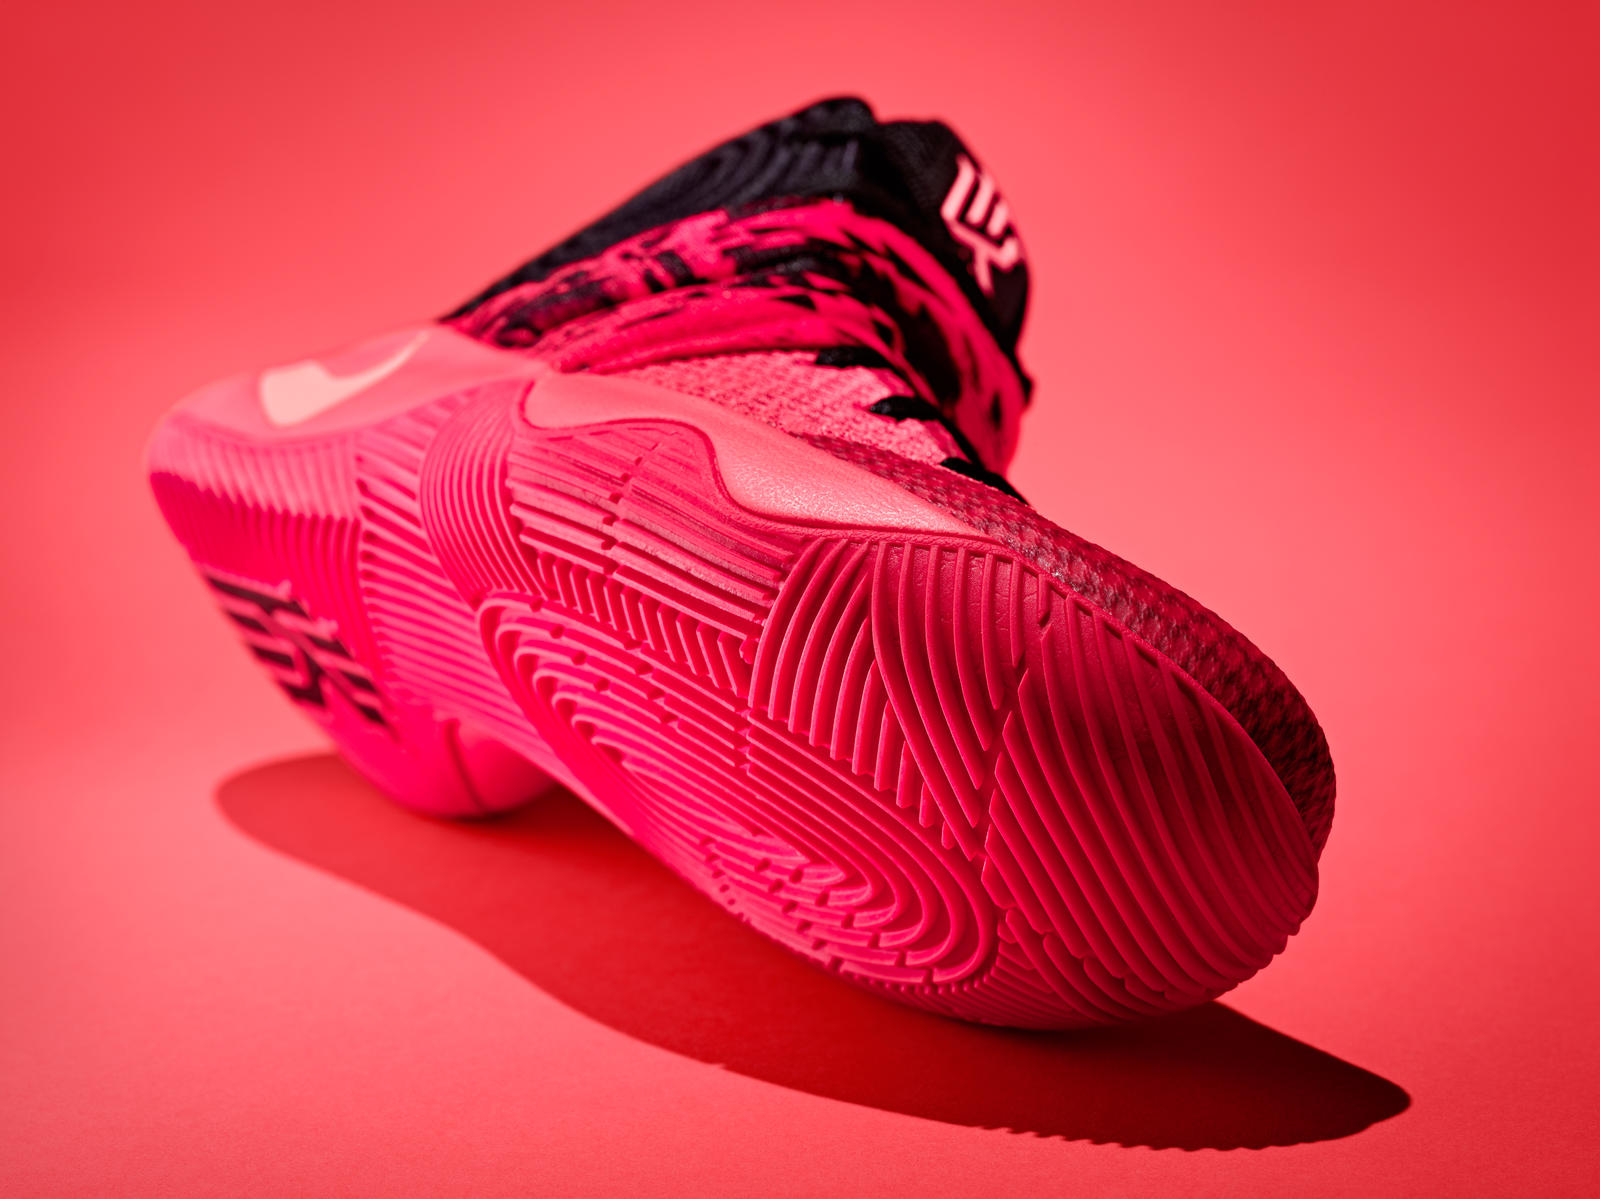 e6153d12350 Check Out the New Nike 'Kyrie 2' Shoes Kyrie Irving Will Wear in the ...